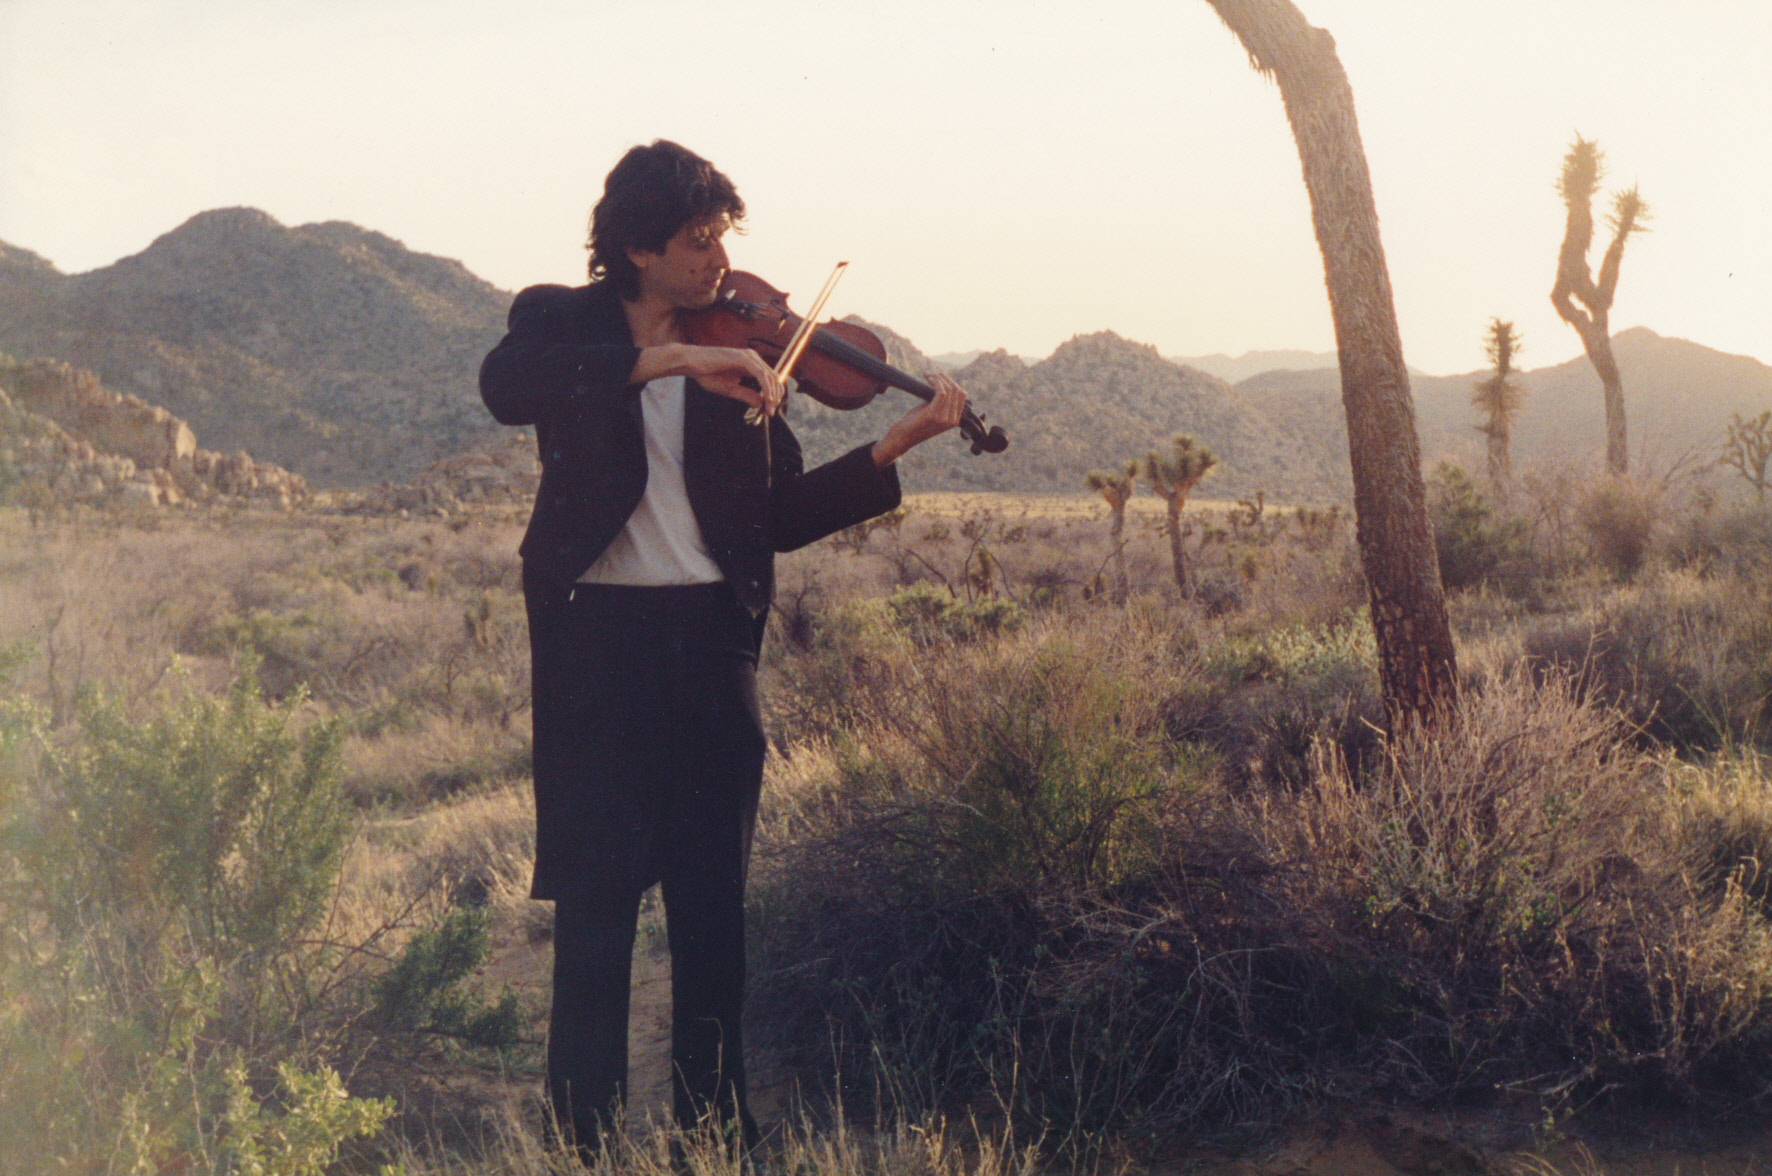 Practicing the violin in Joshua Tree, CA.